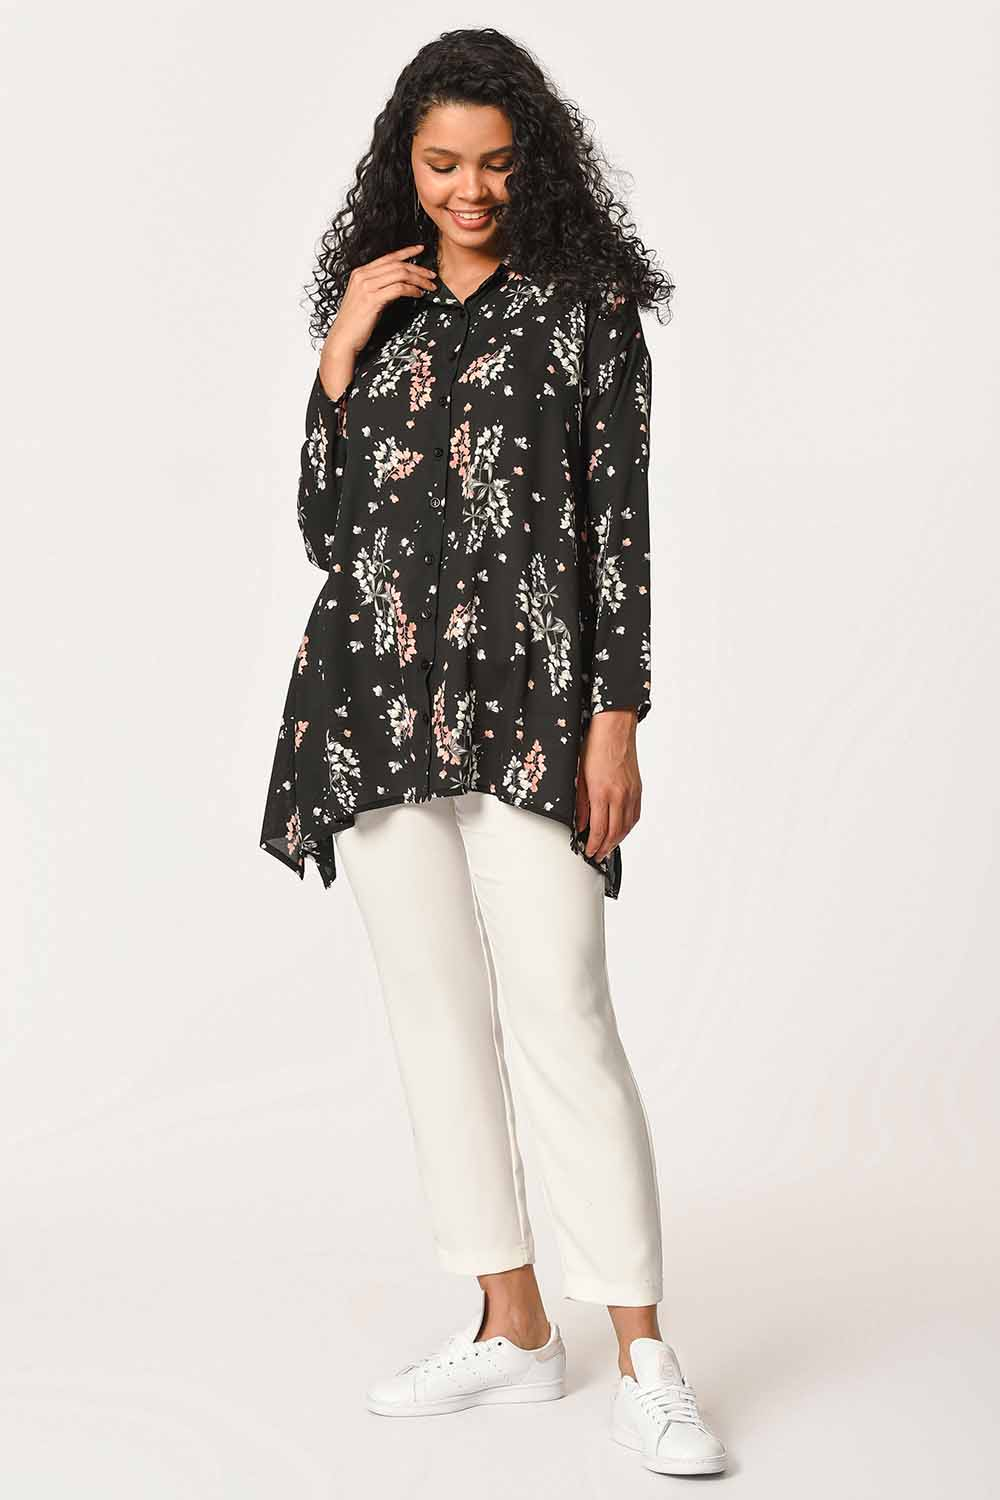 MIZALLE Floral Patterned Shirt Blouse (Black) (1)